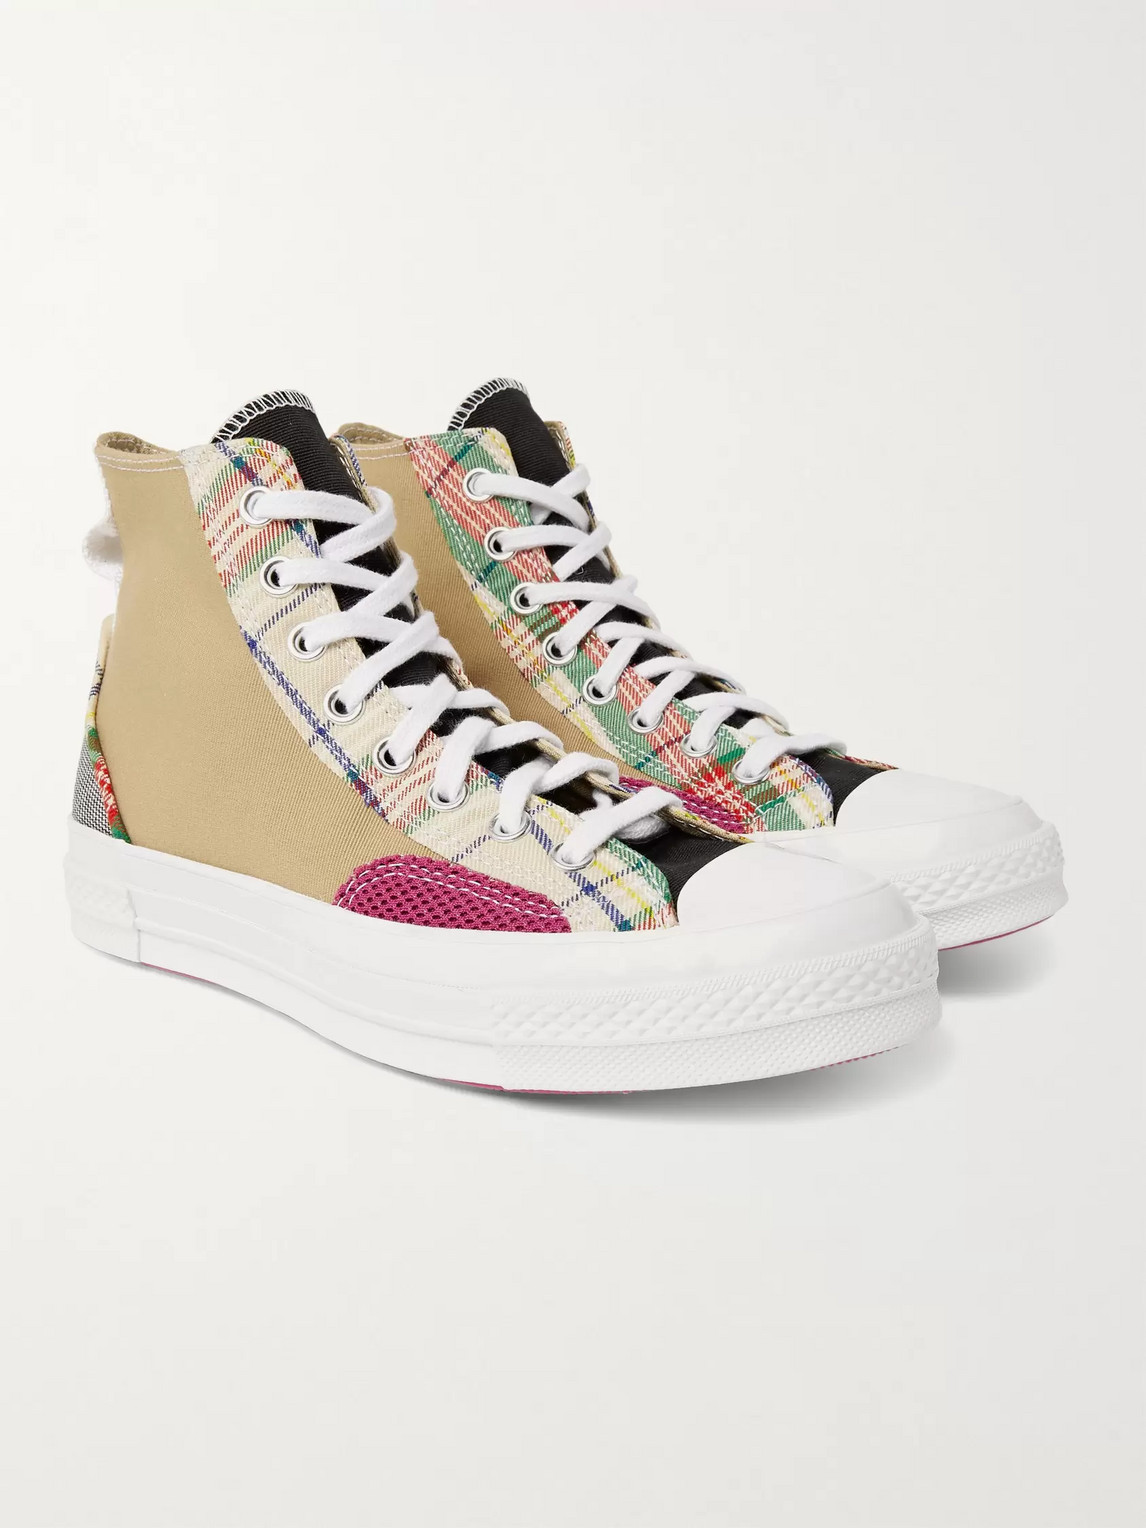 CONVERSE HACKED FASHION CHUCK 70 PATCHWORK MESH-TRIMMED CANVAS HIGH-TOP SNEAKERS